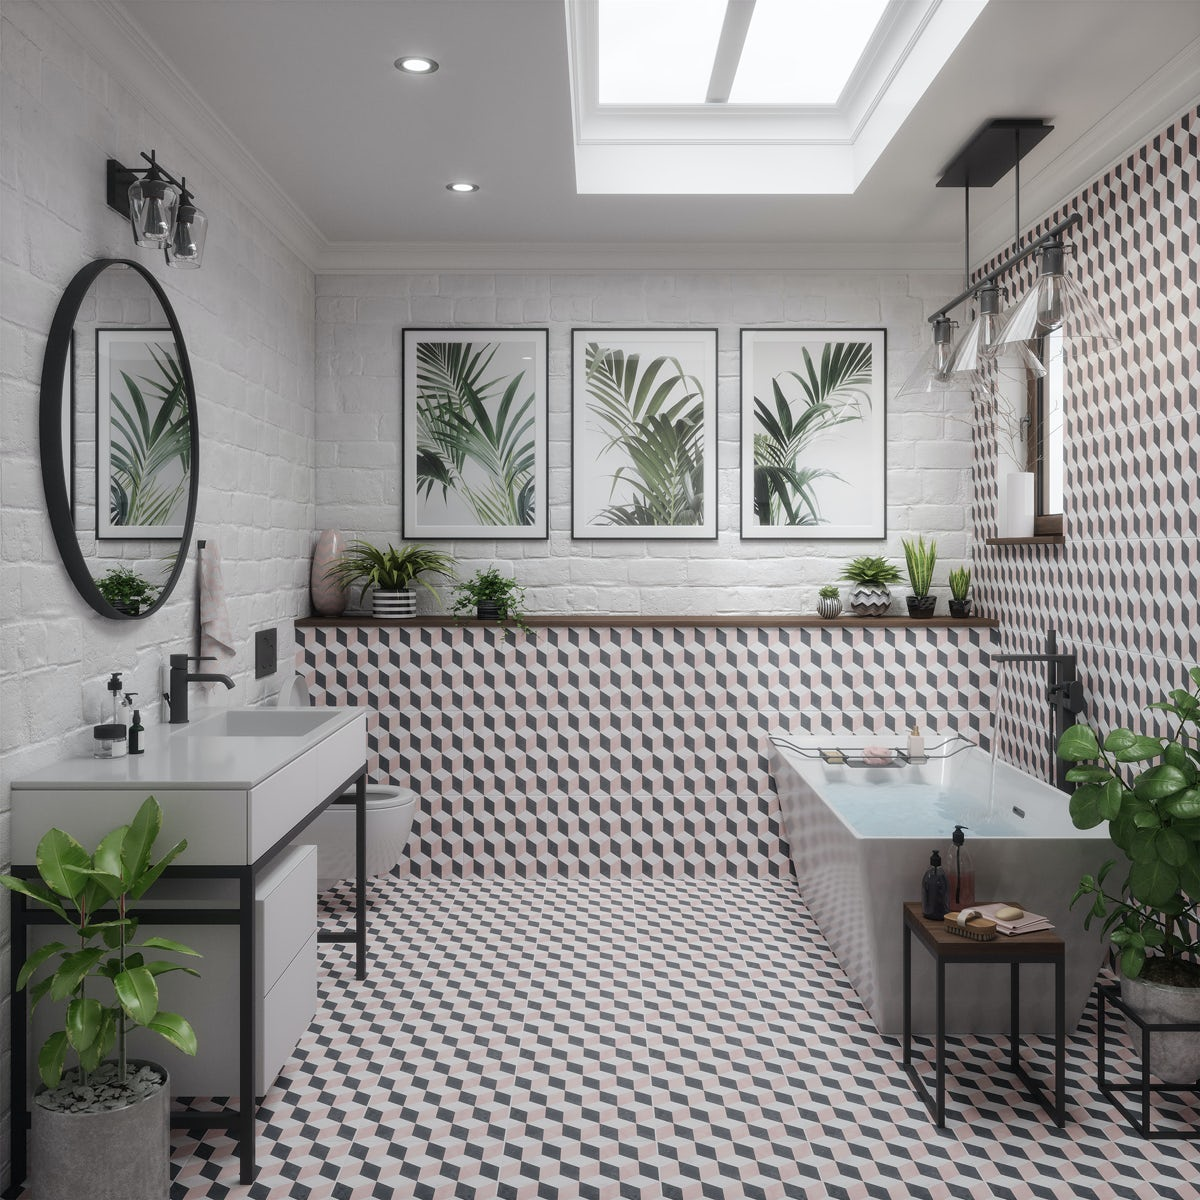 Modern Ideas And Latest Trends Adding Luxury To Kitchen: British Ceramic Tile Illusion Feature Matt Wall And Floor